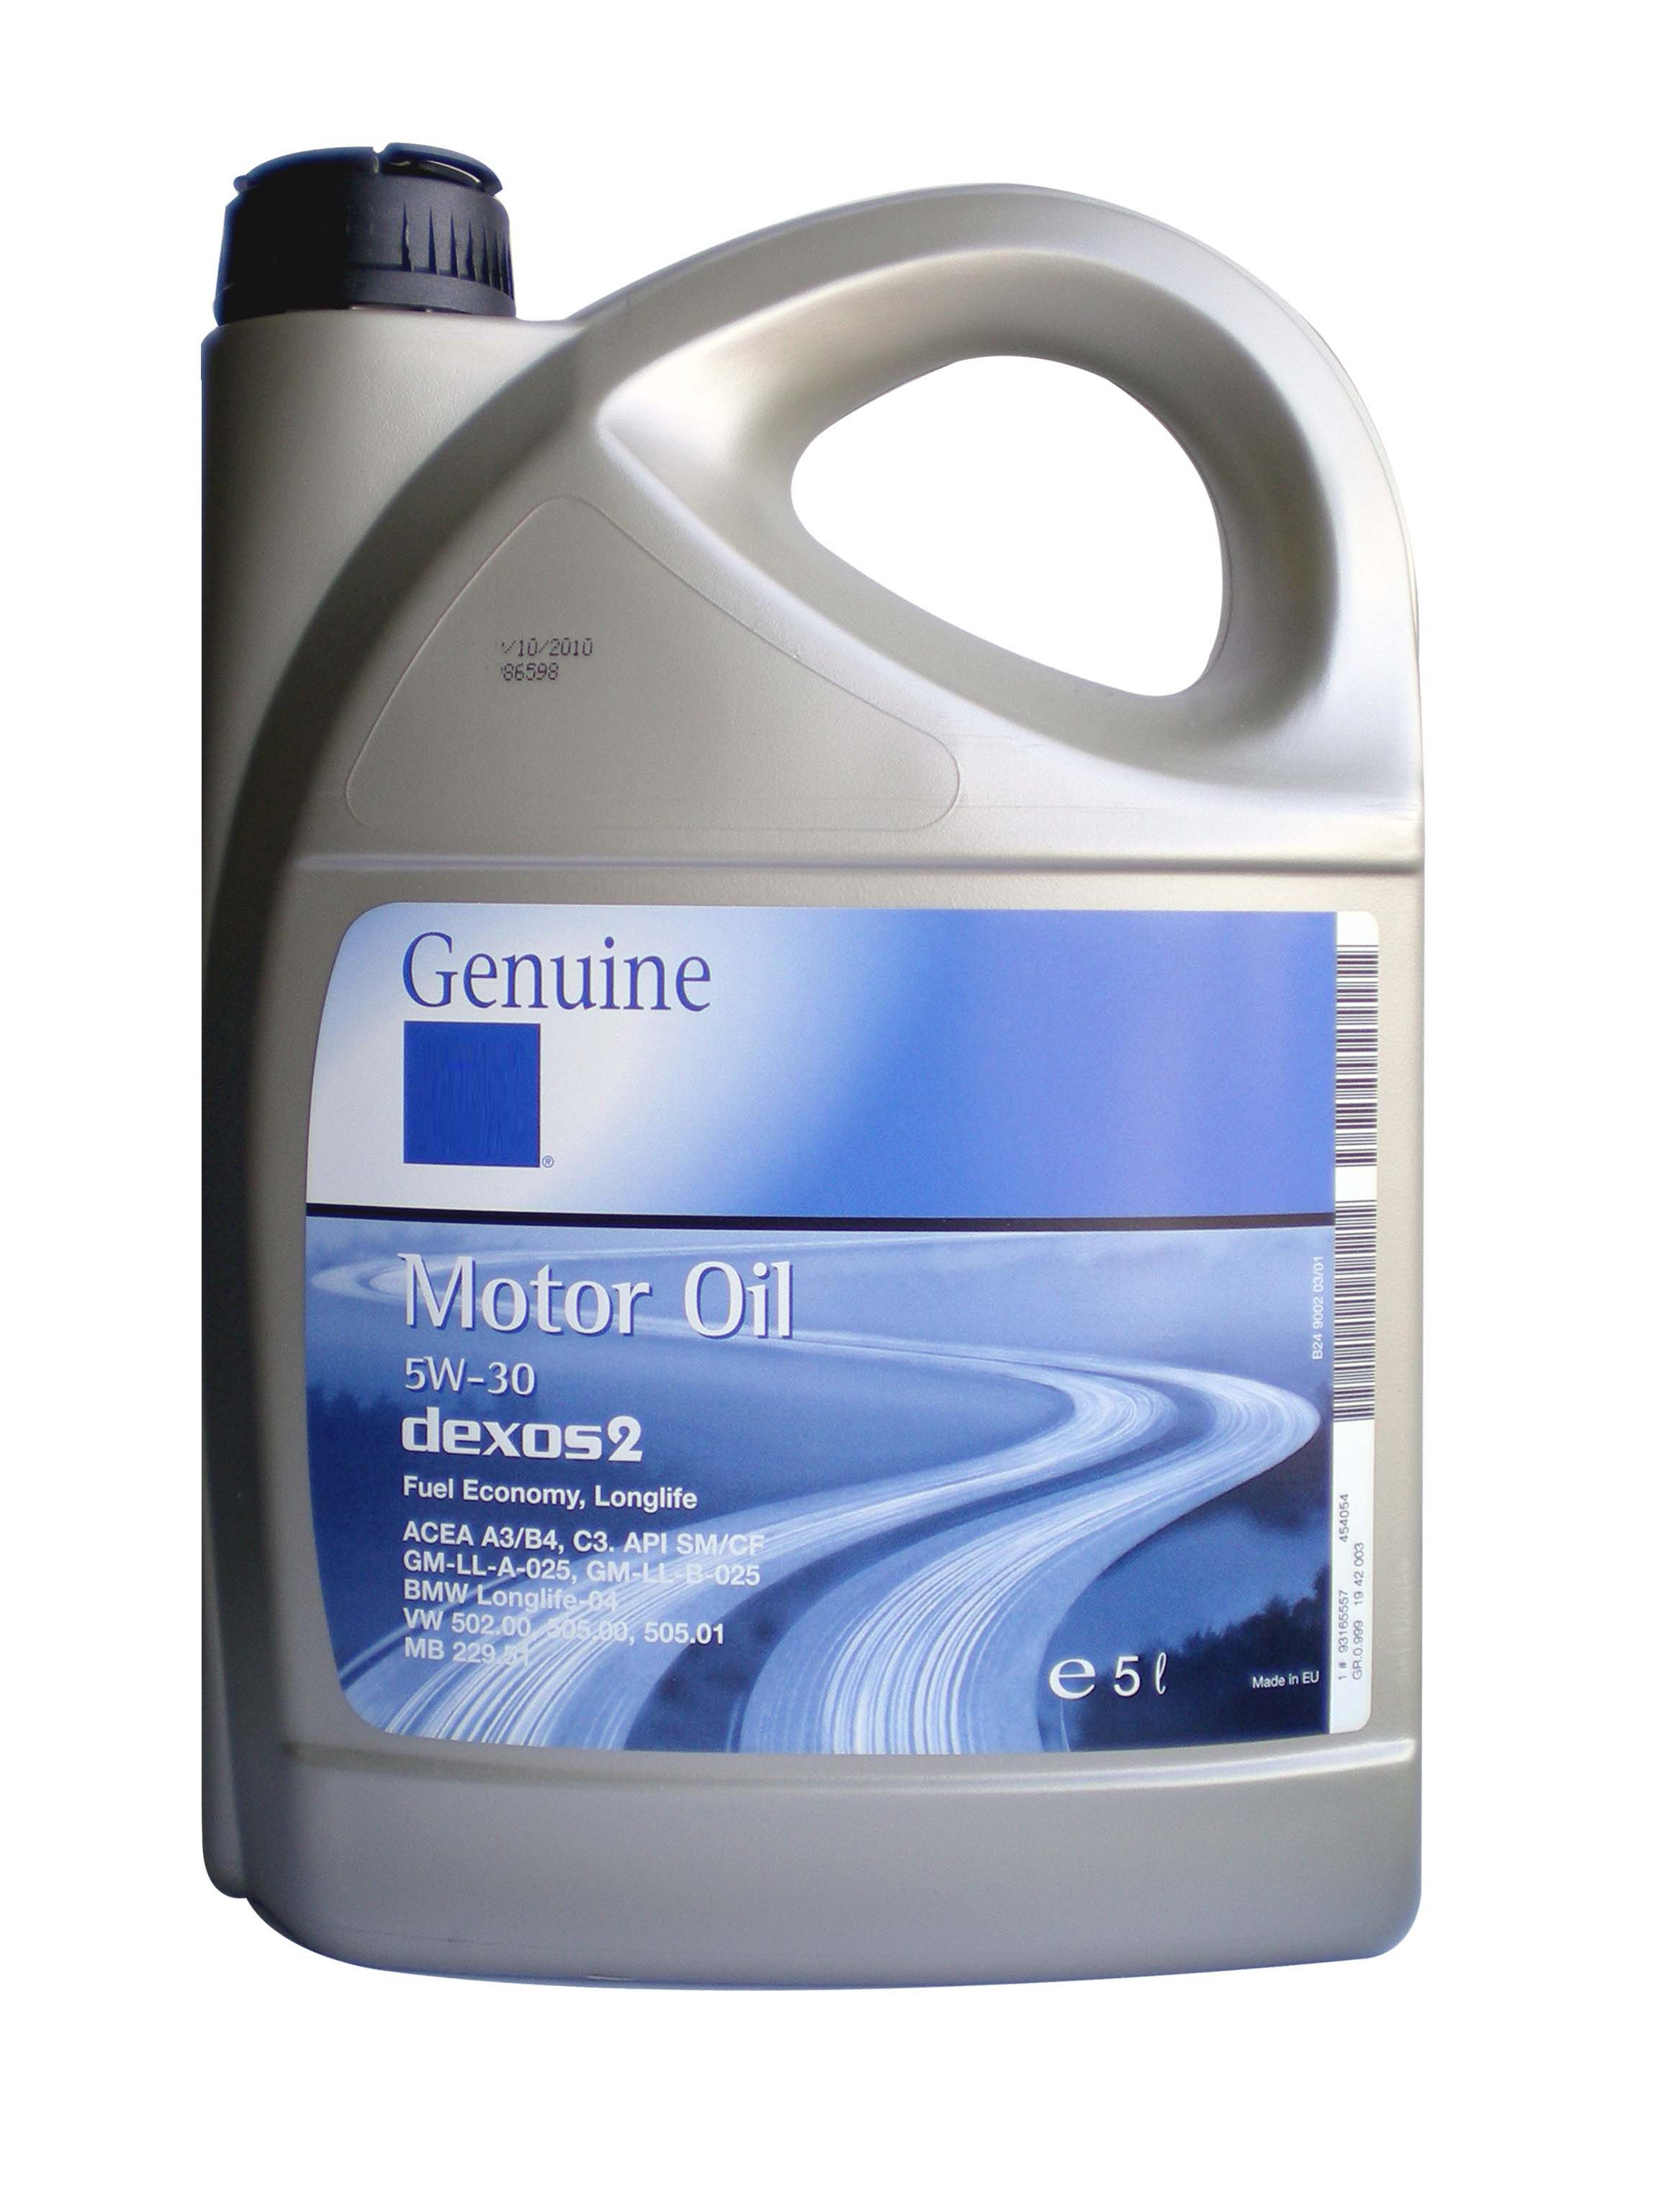 General Motors Motor Oil Dexos 2